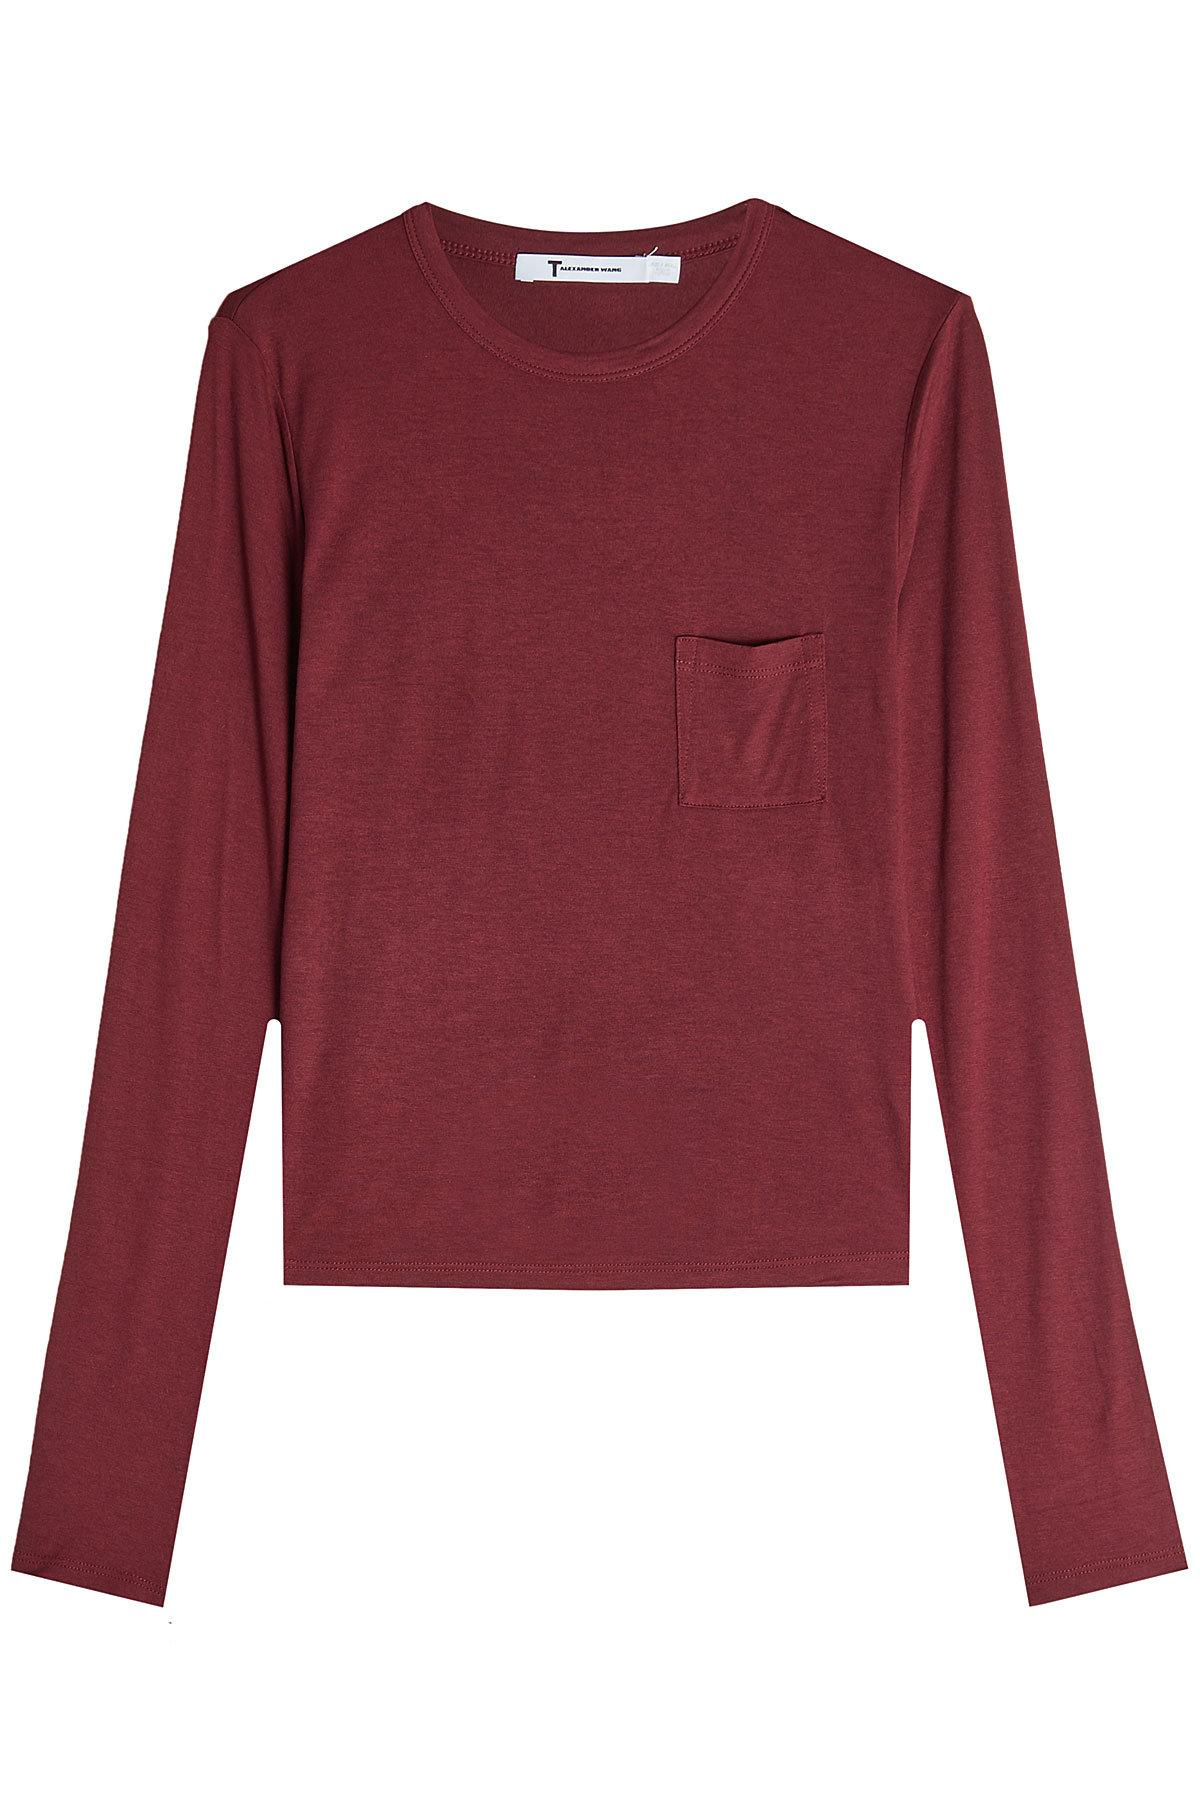 T By Alexander Wang Long Sleeved Jersey Top In Red